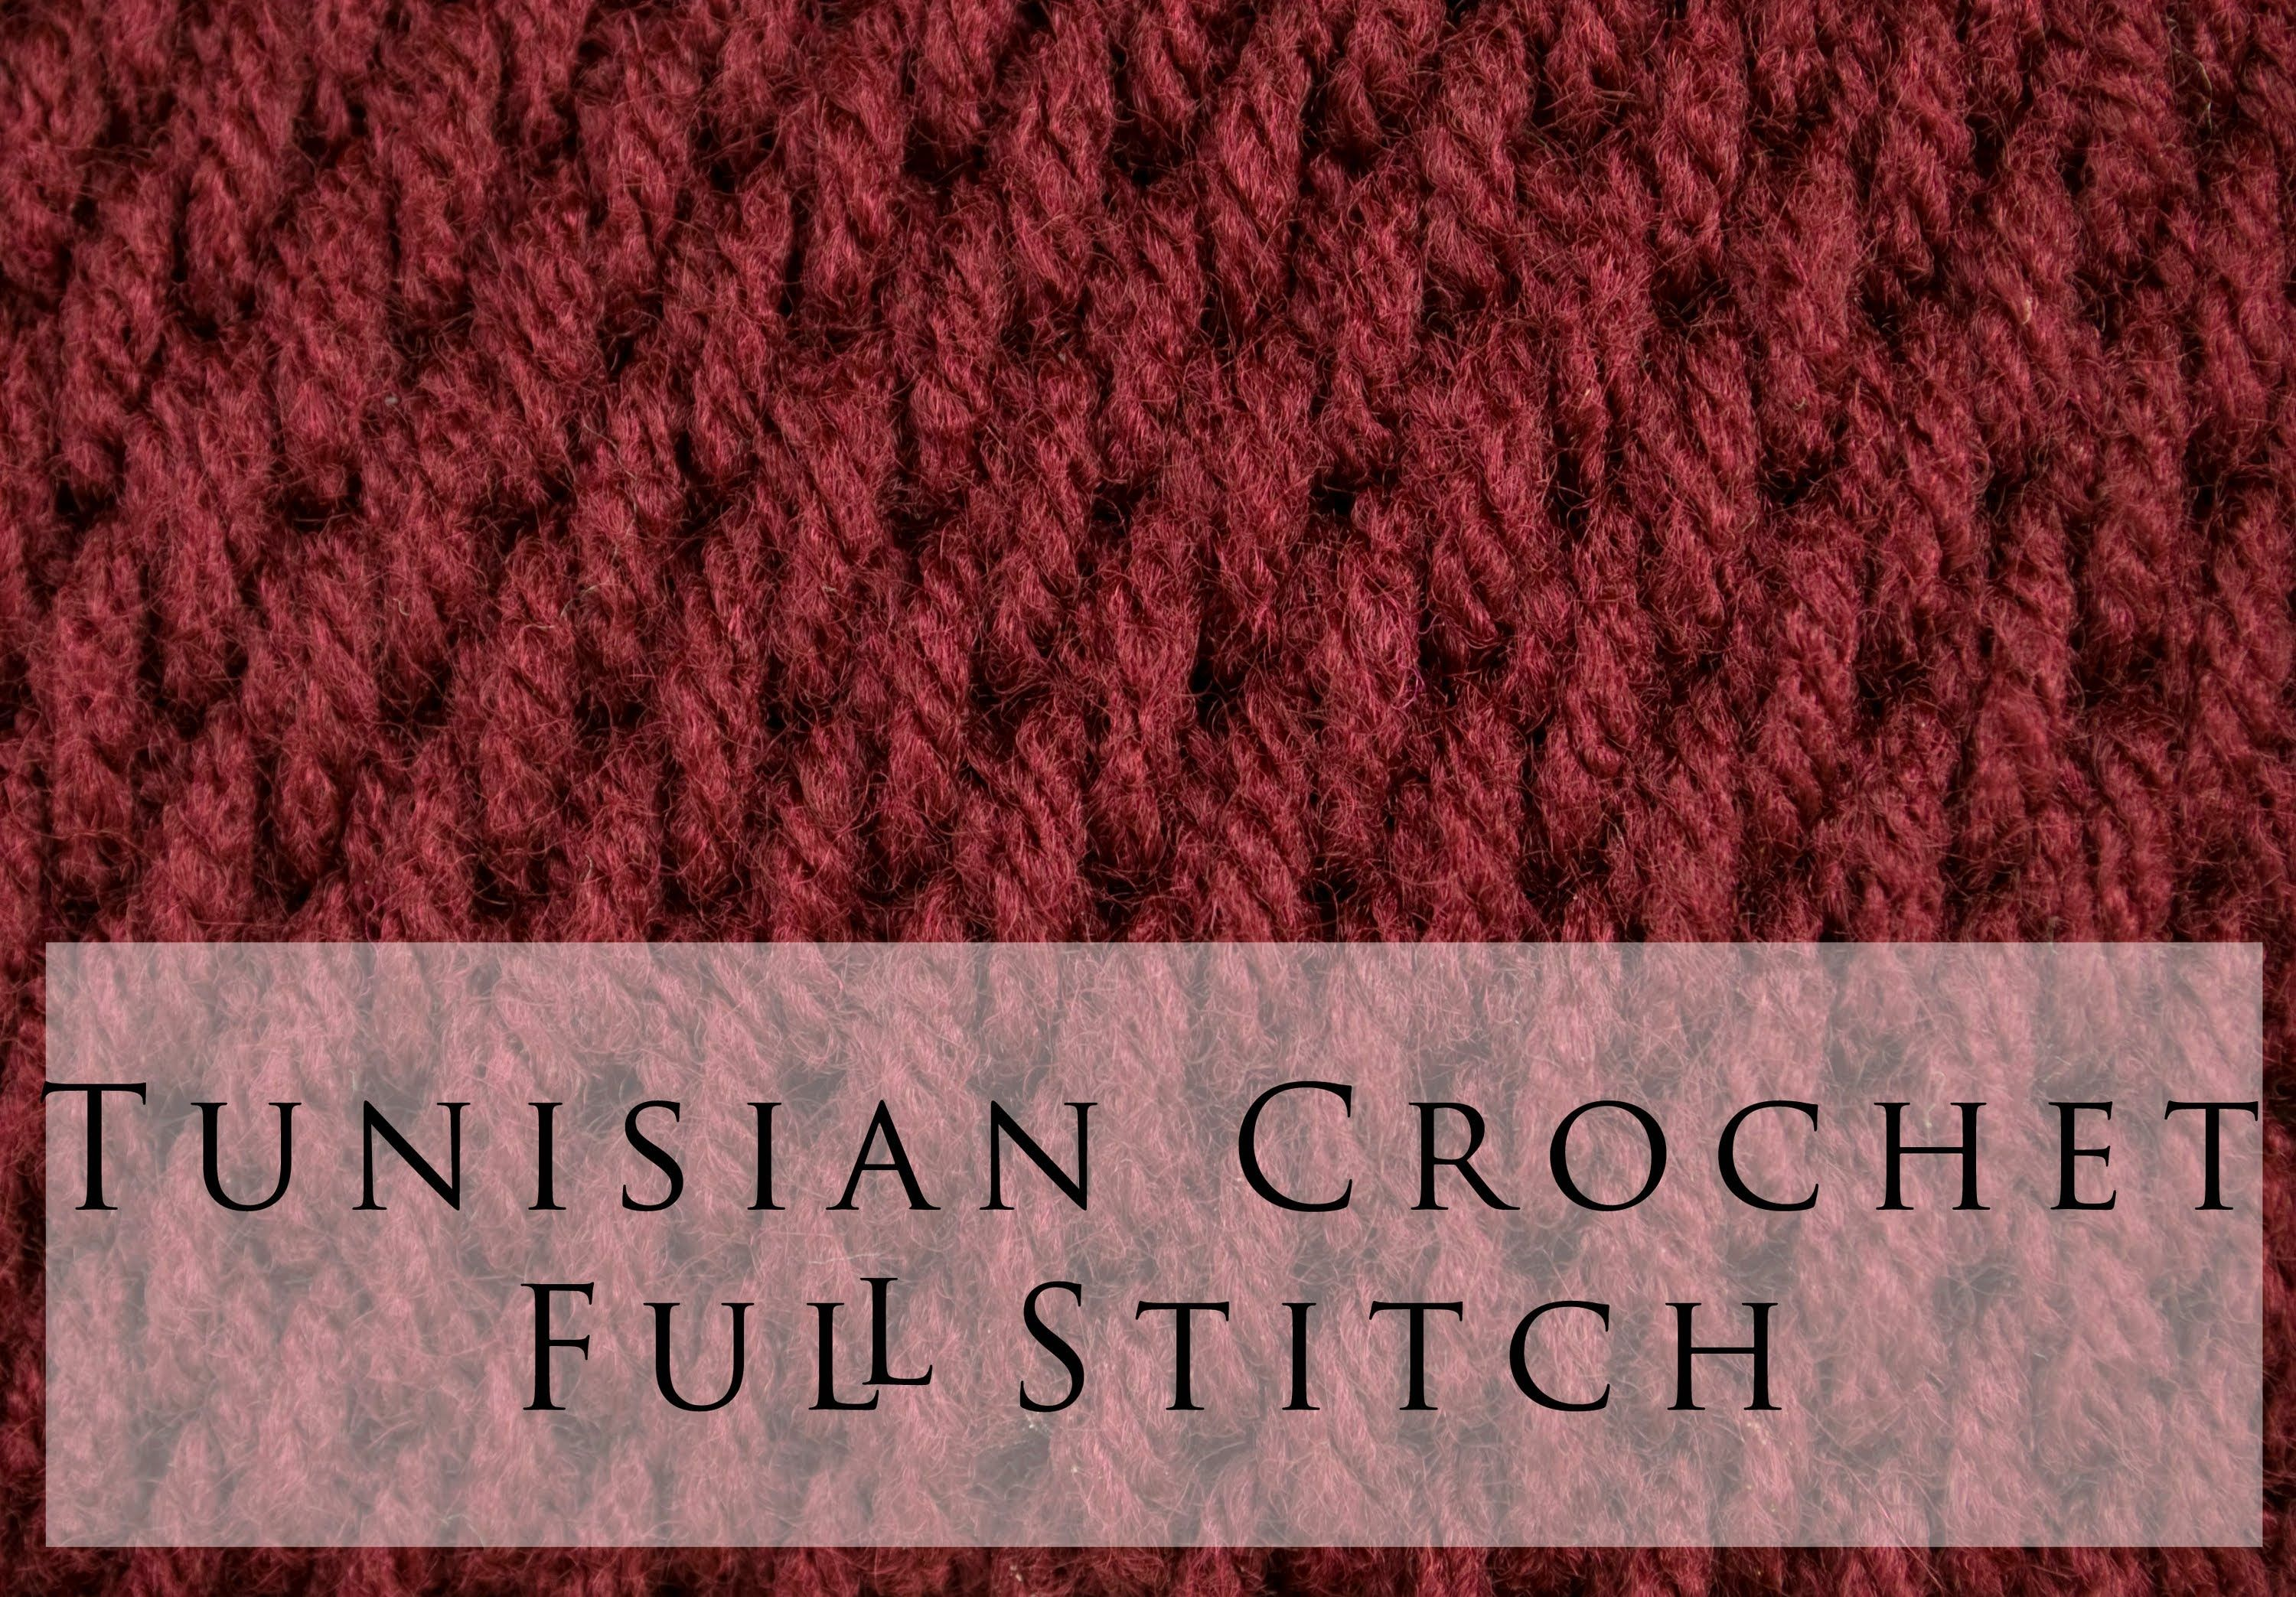 Tunisian crochet full stitch the other side has a rib in it tunisian crochet full stitch the other side has a rib in it could be bankloansurffo Images